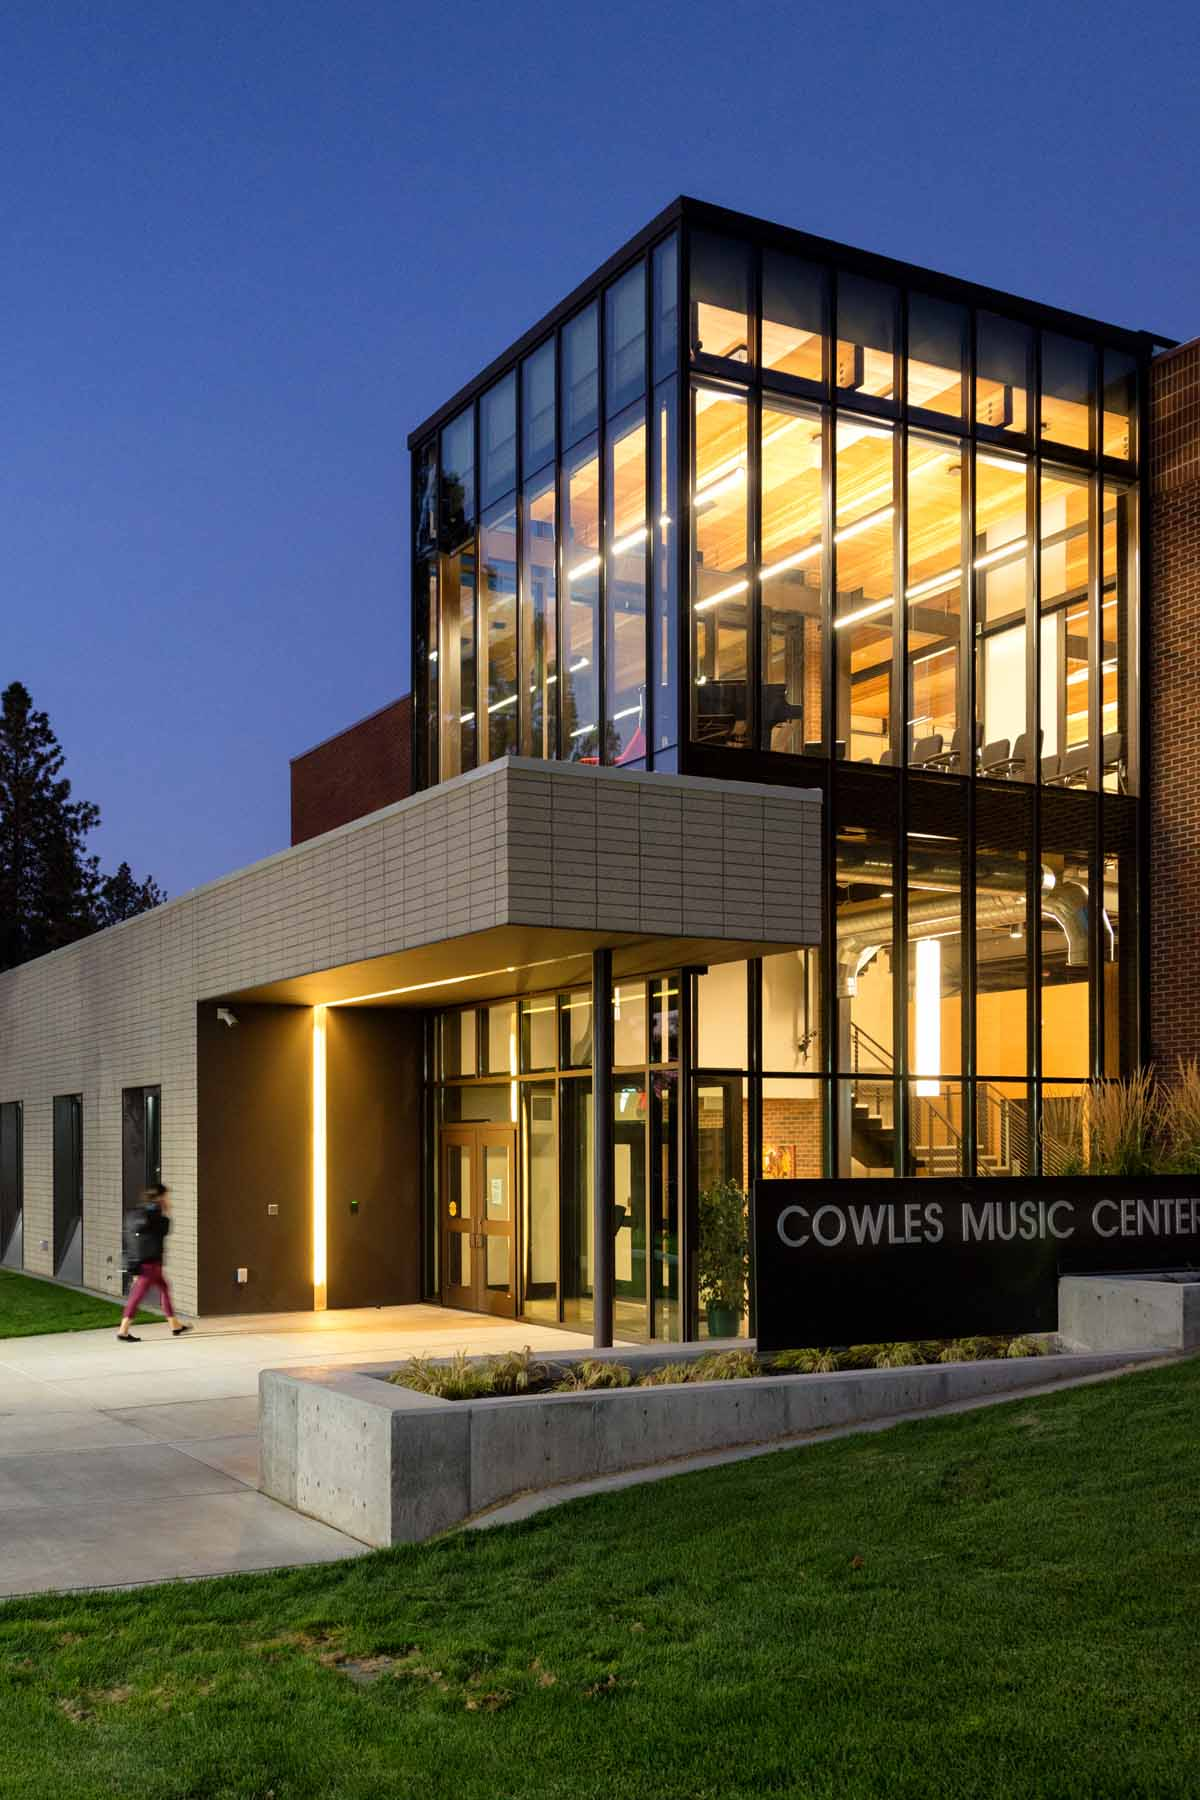 Whitworth University <br/> Cowles Music Center and Myhre Recital Hall